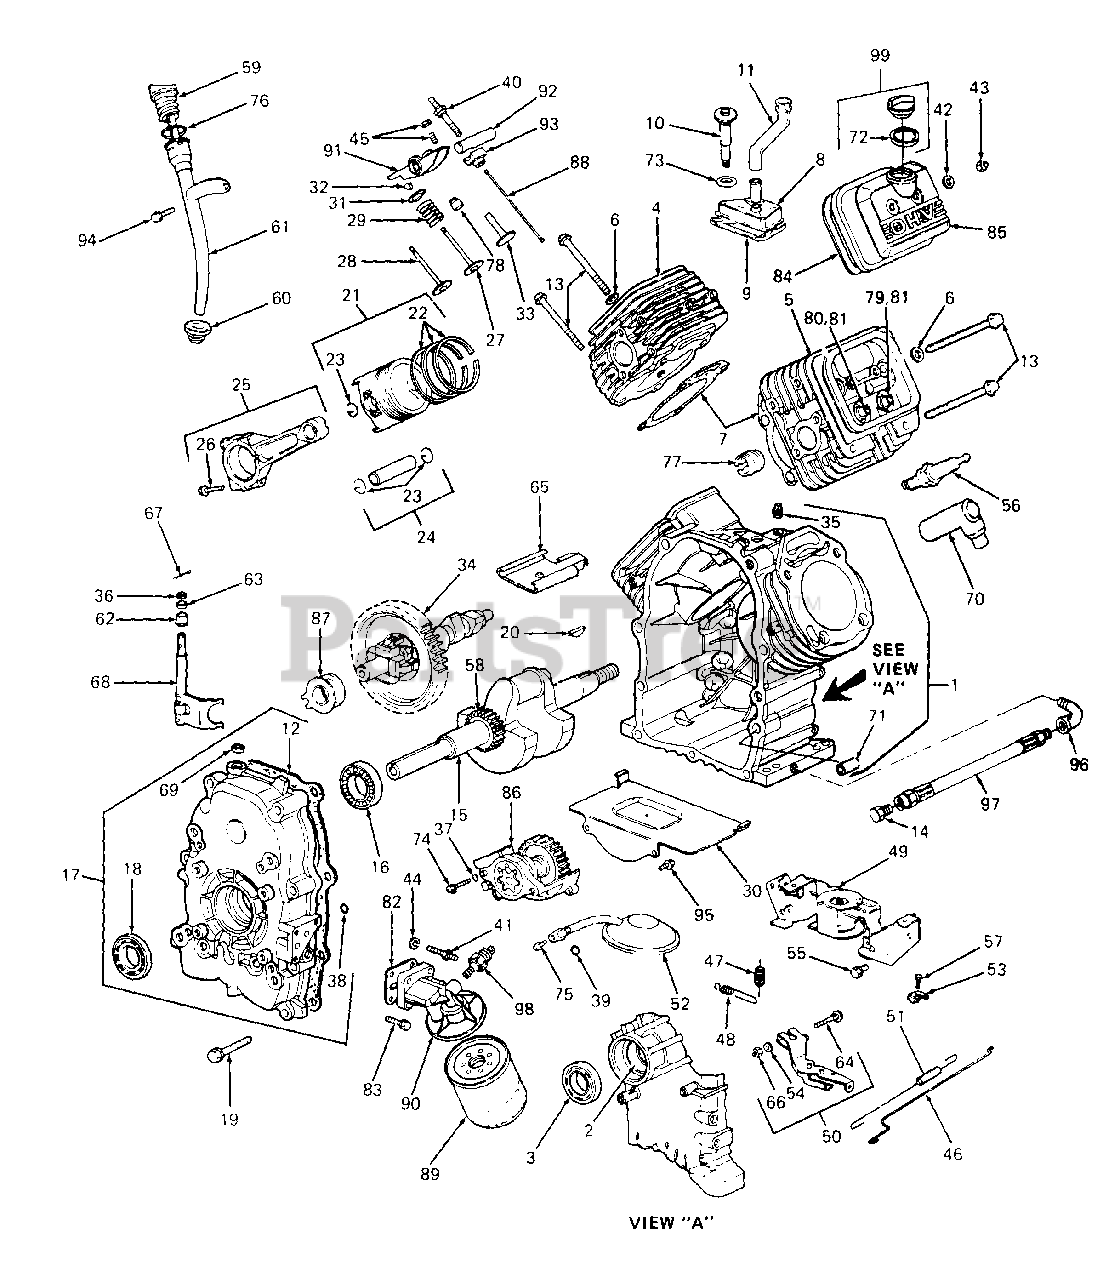 Cub Cadet Parts On The Engine Assembly Diagram For 1440